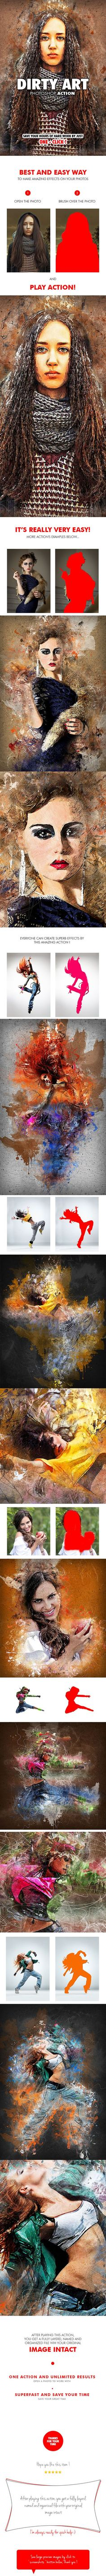 Dirty Art Photoshop Action - Photo Effects Actions